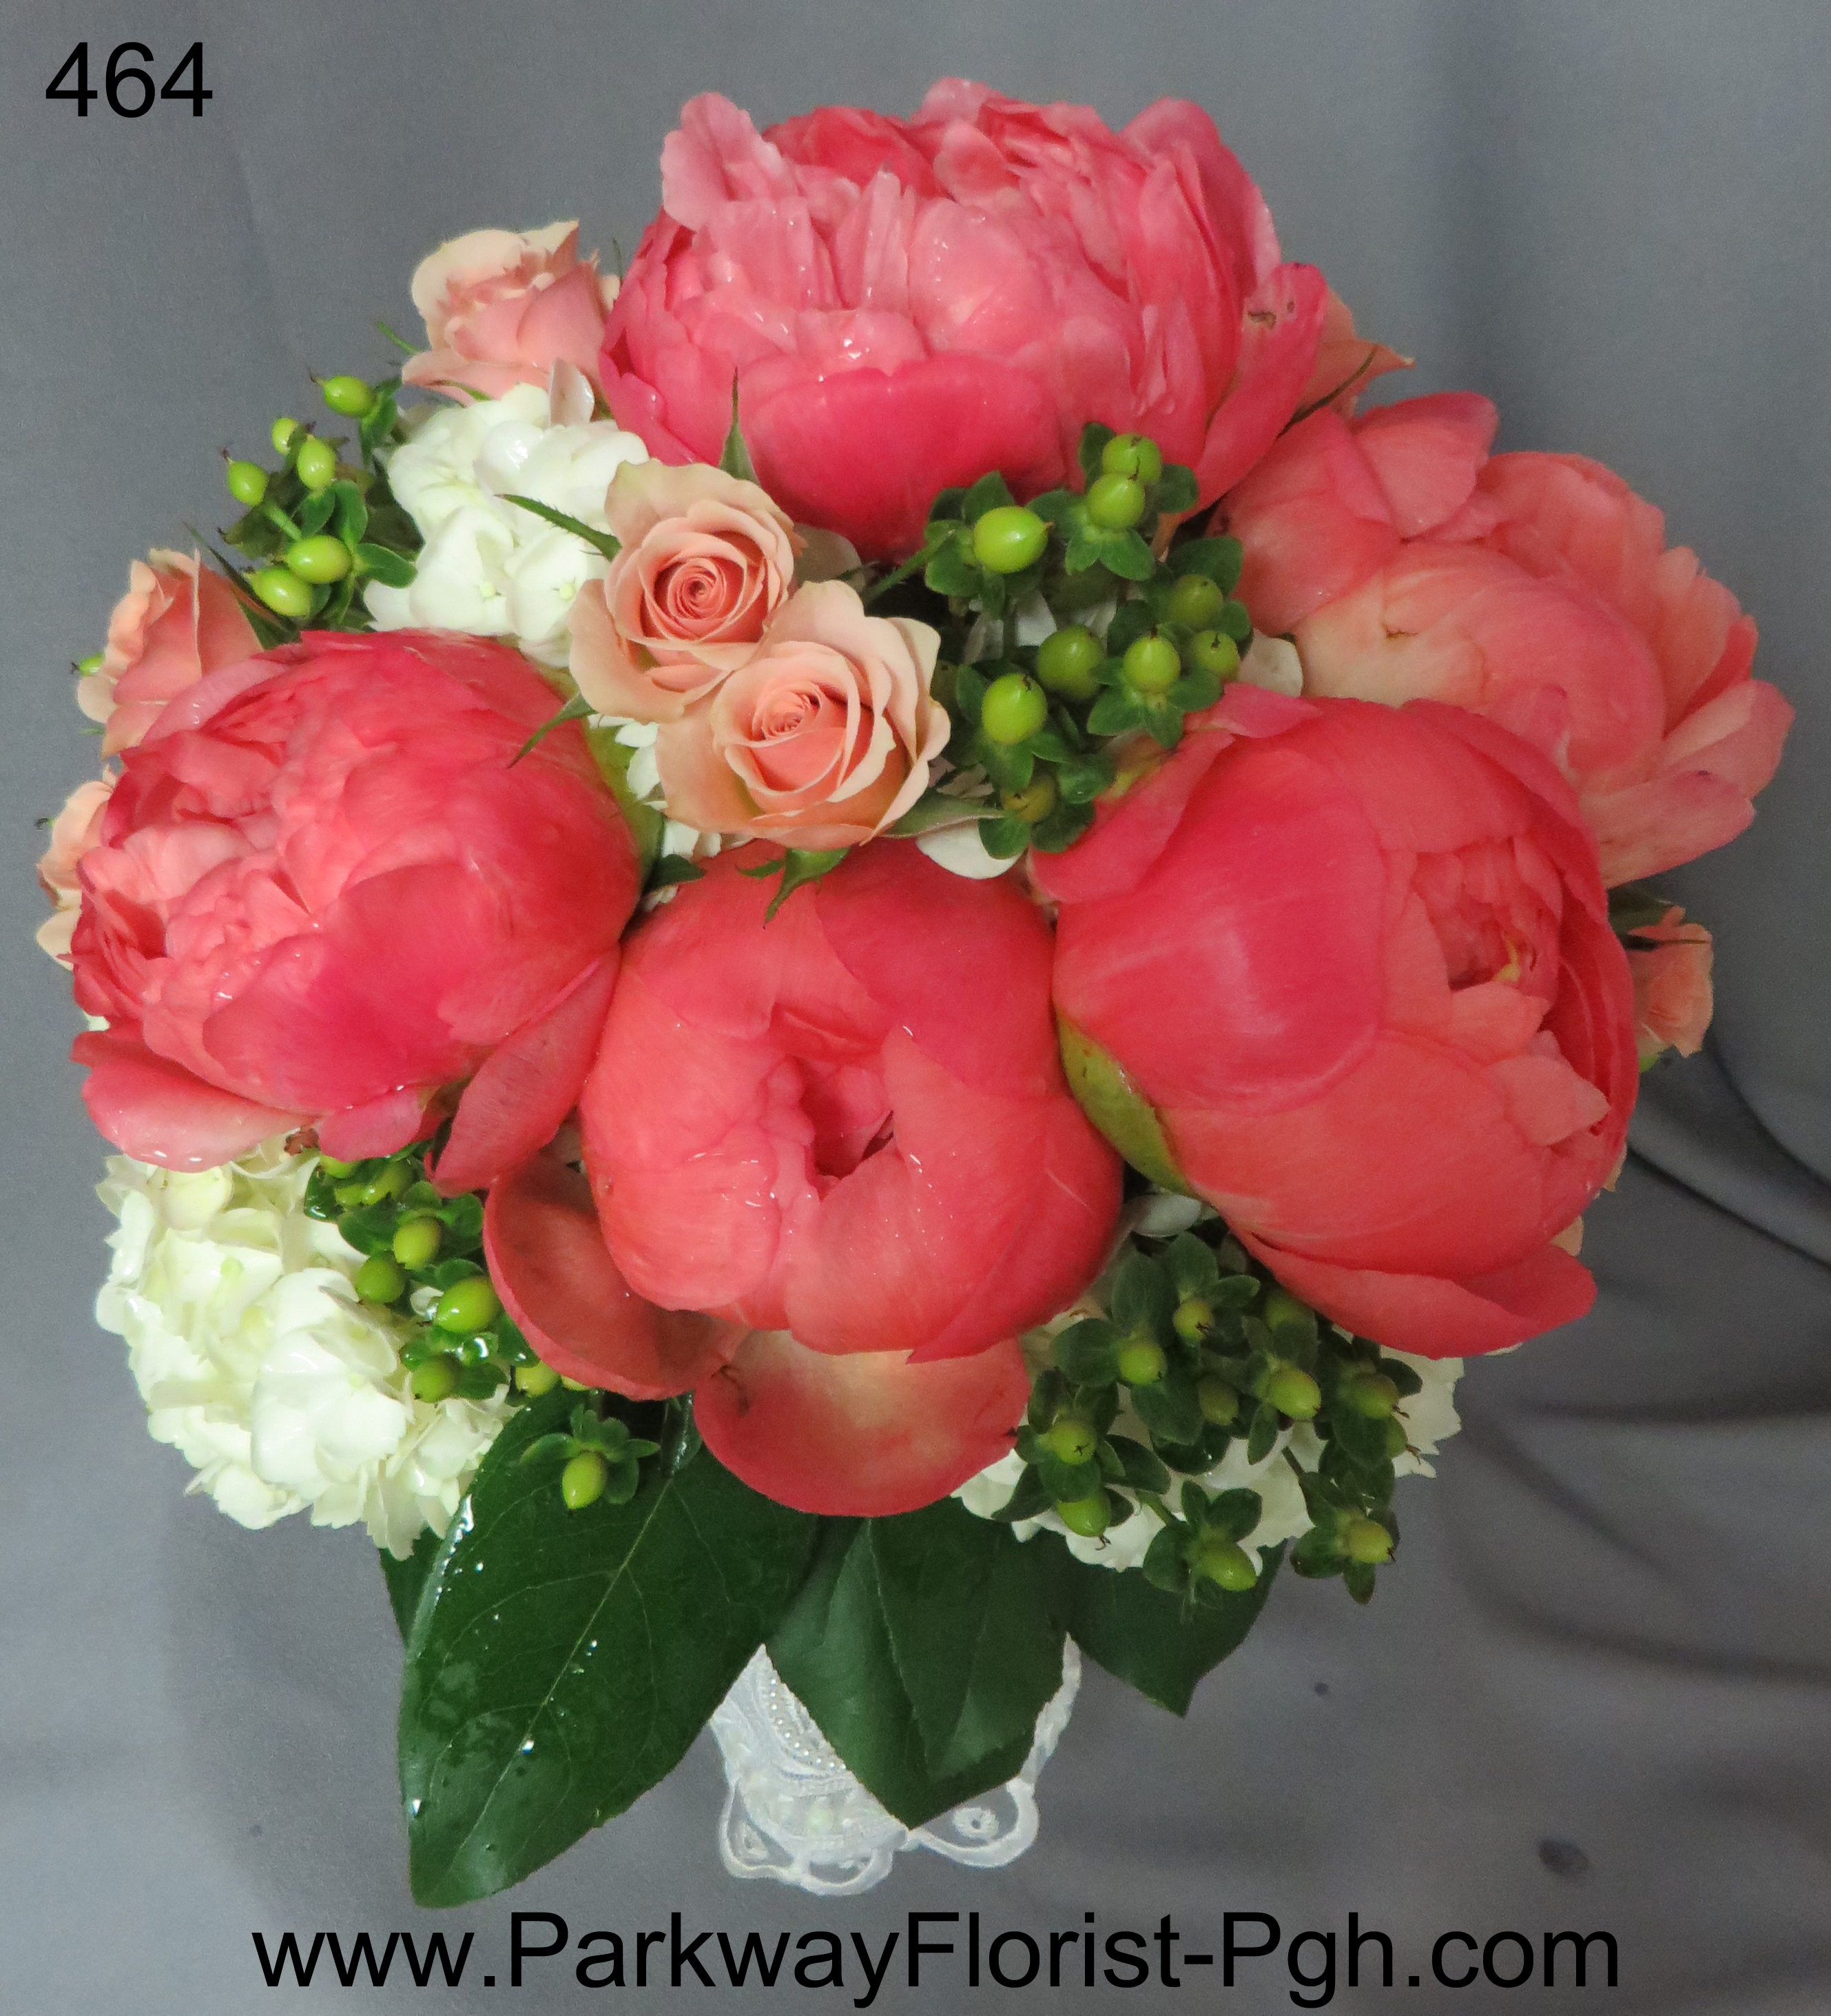 Coral was the color of the day! | Parkway Florist Pittsburgh Blog